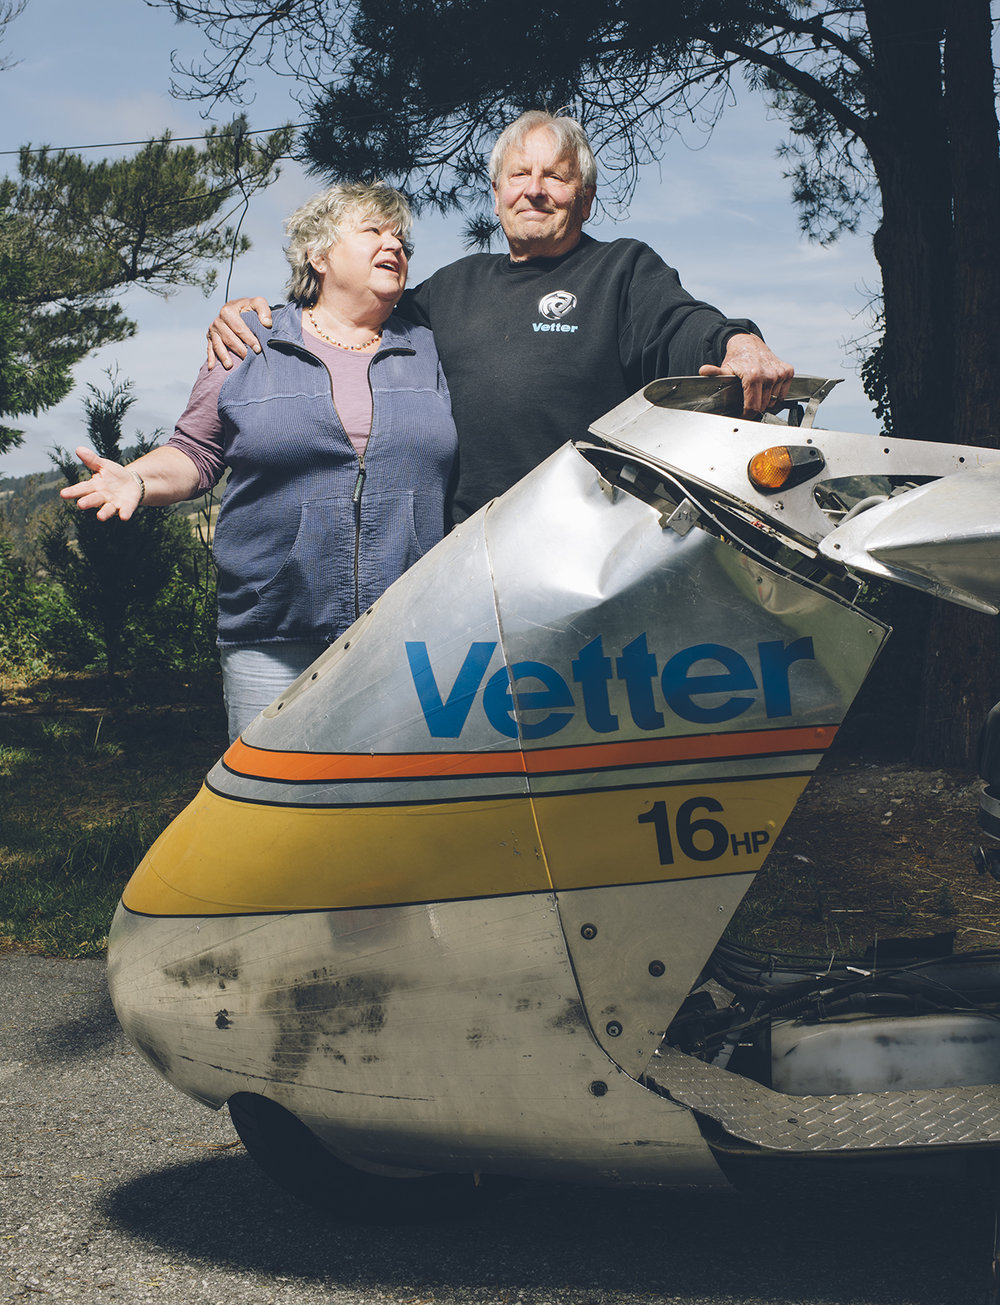 Craig and Carol Vetter. Carol had a long career at Vetter Fairings and is an avid motorcyclist herself.